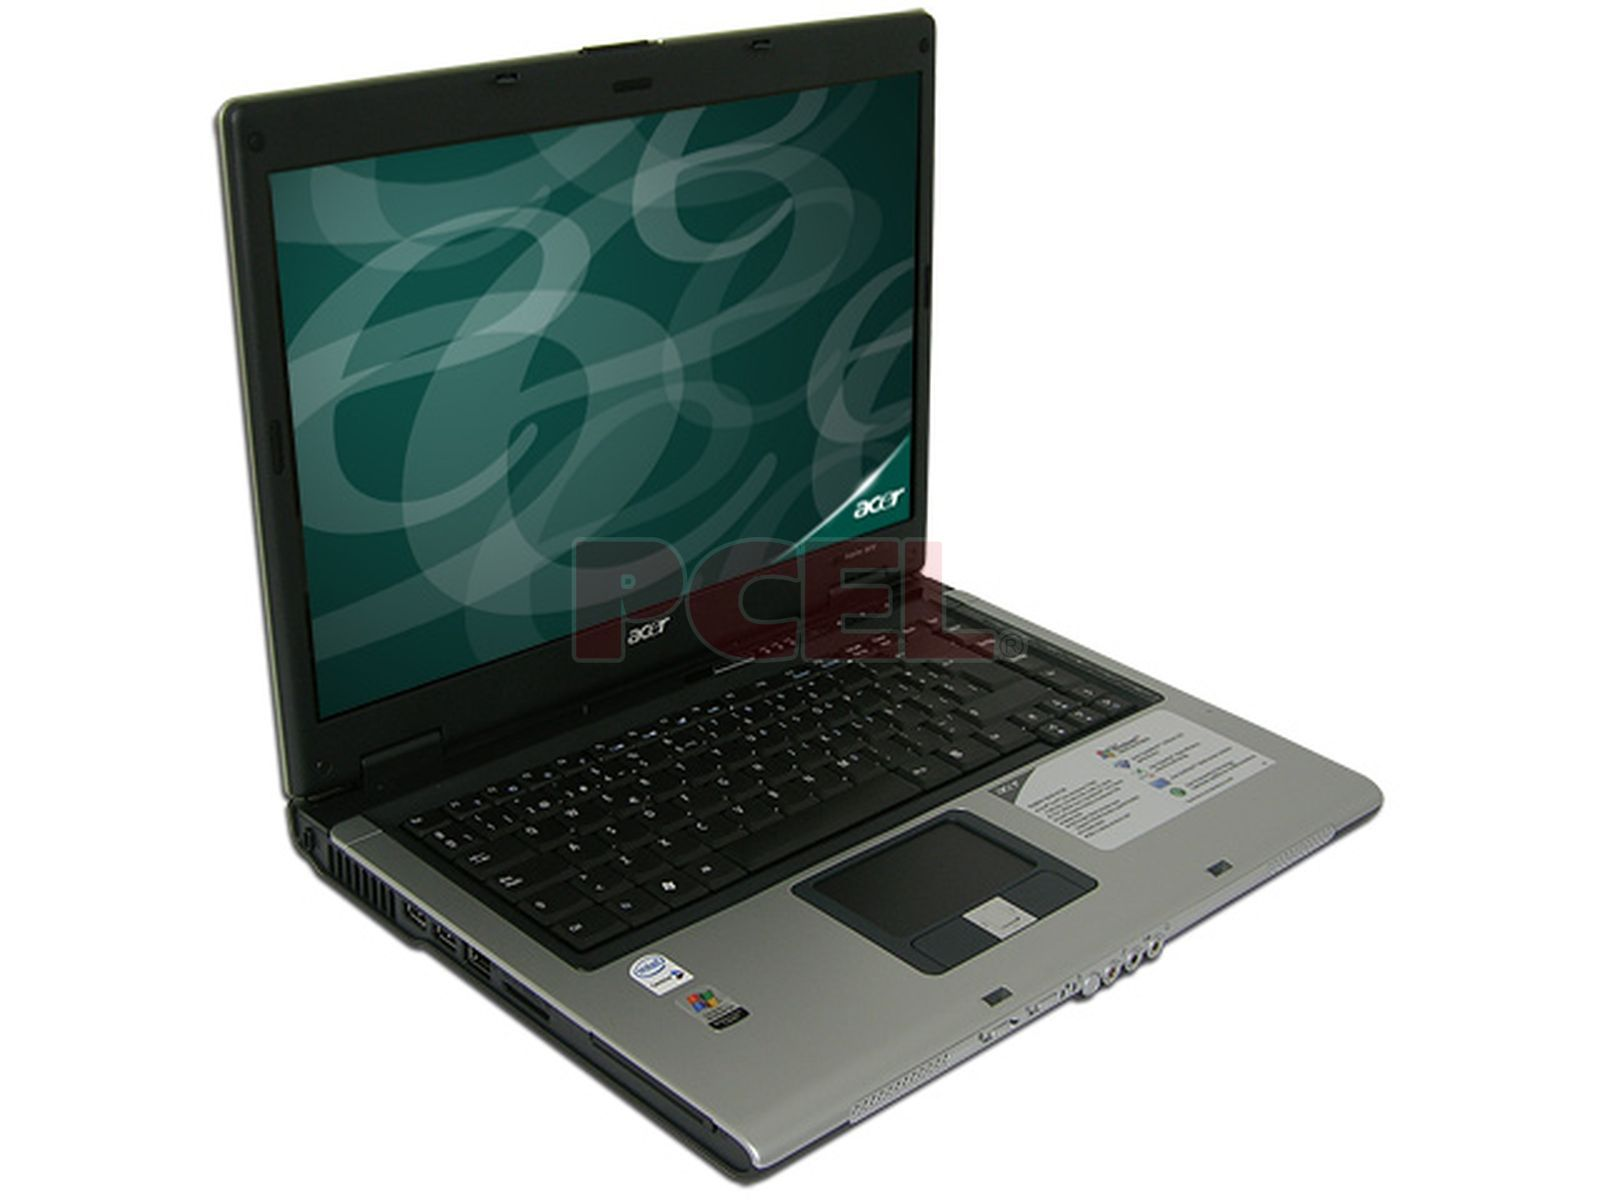 ACER EXTENSA 4130 WIRELESS LAN DOWNLOAD DRIVER